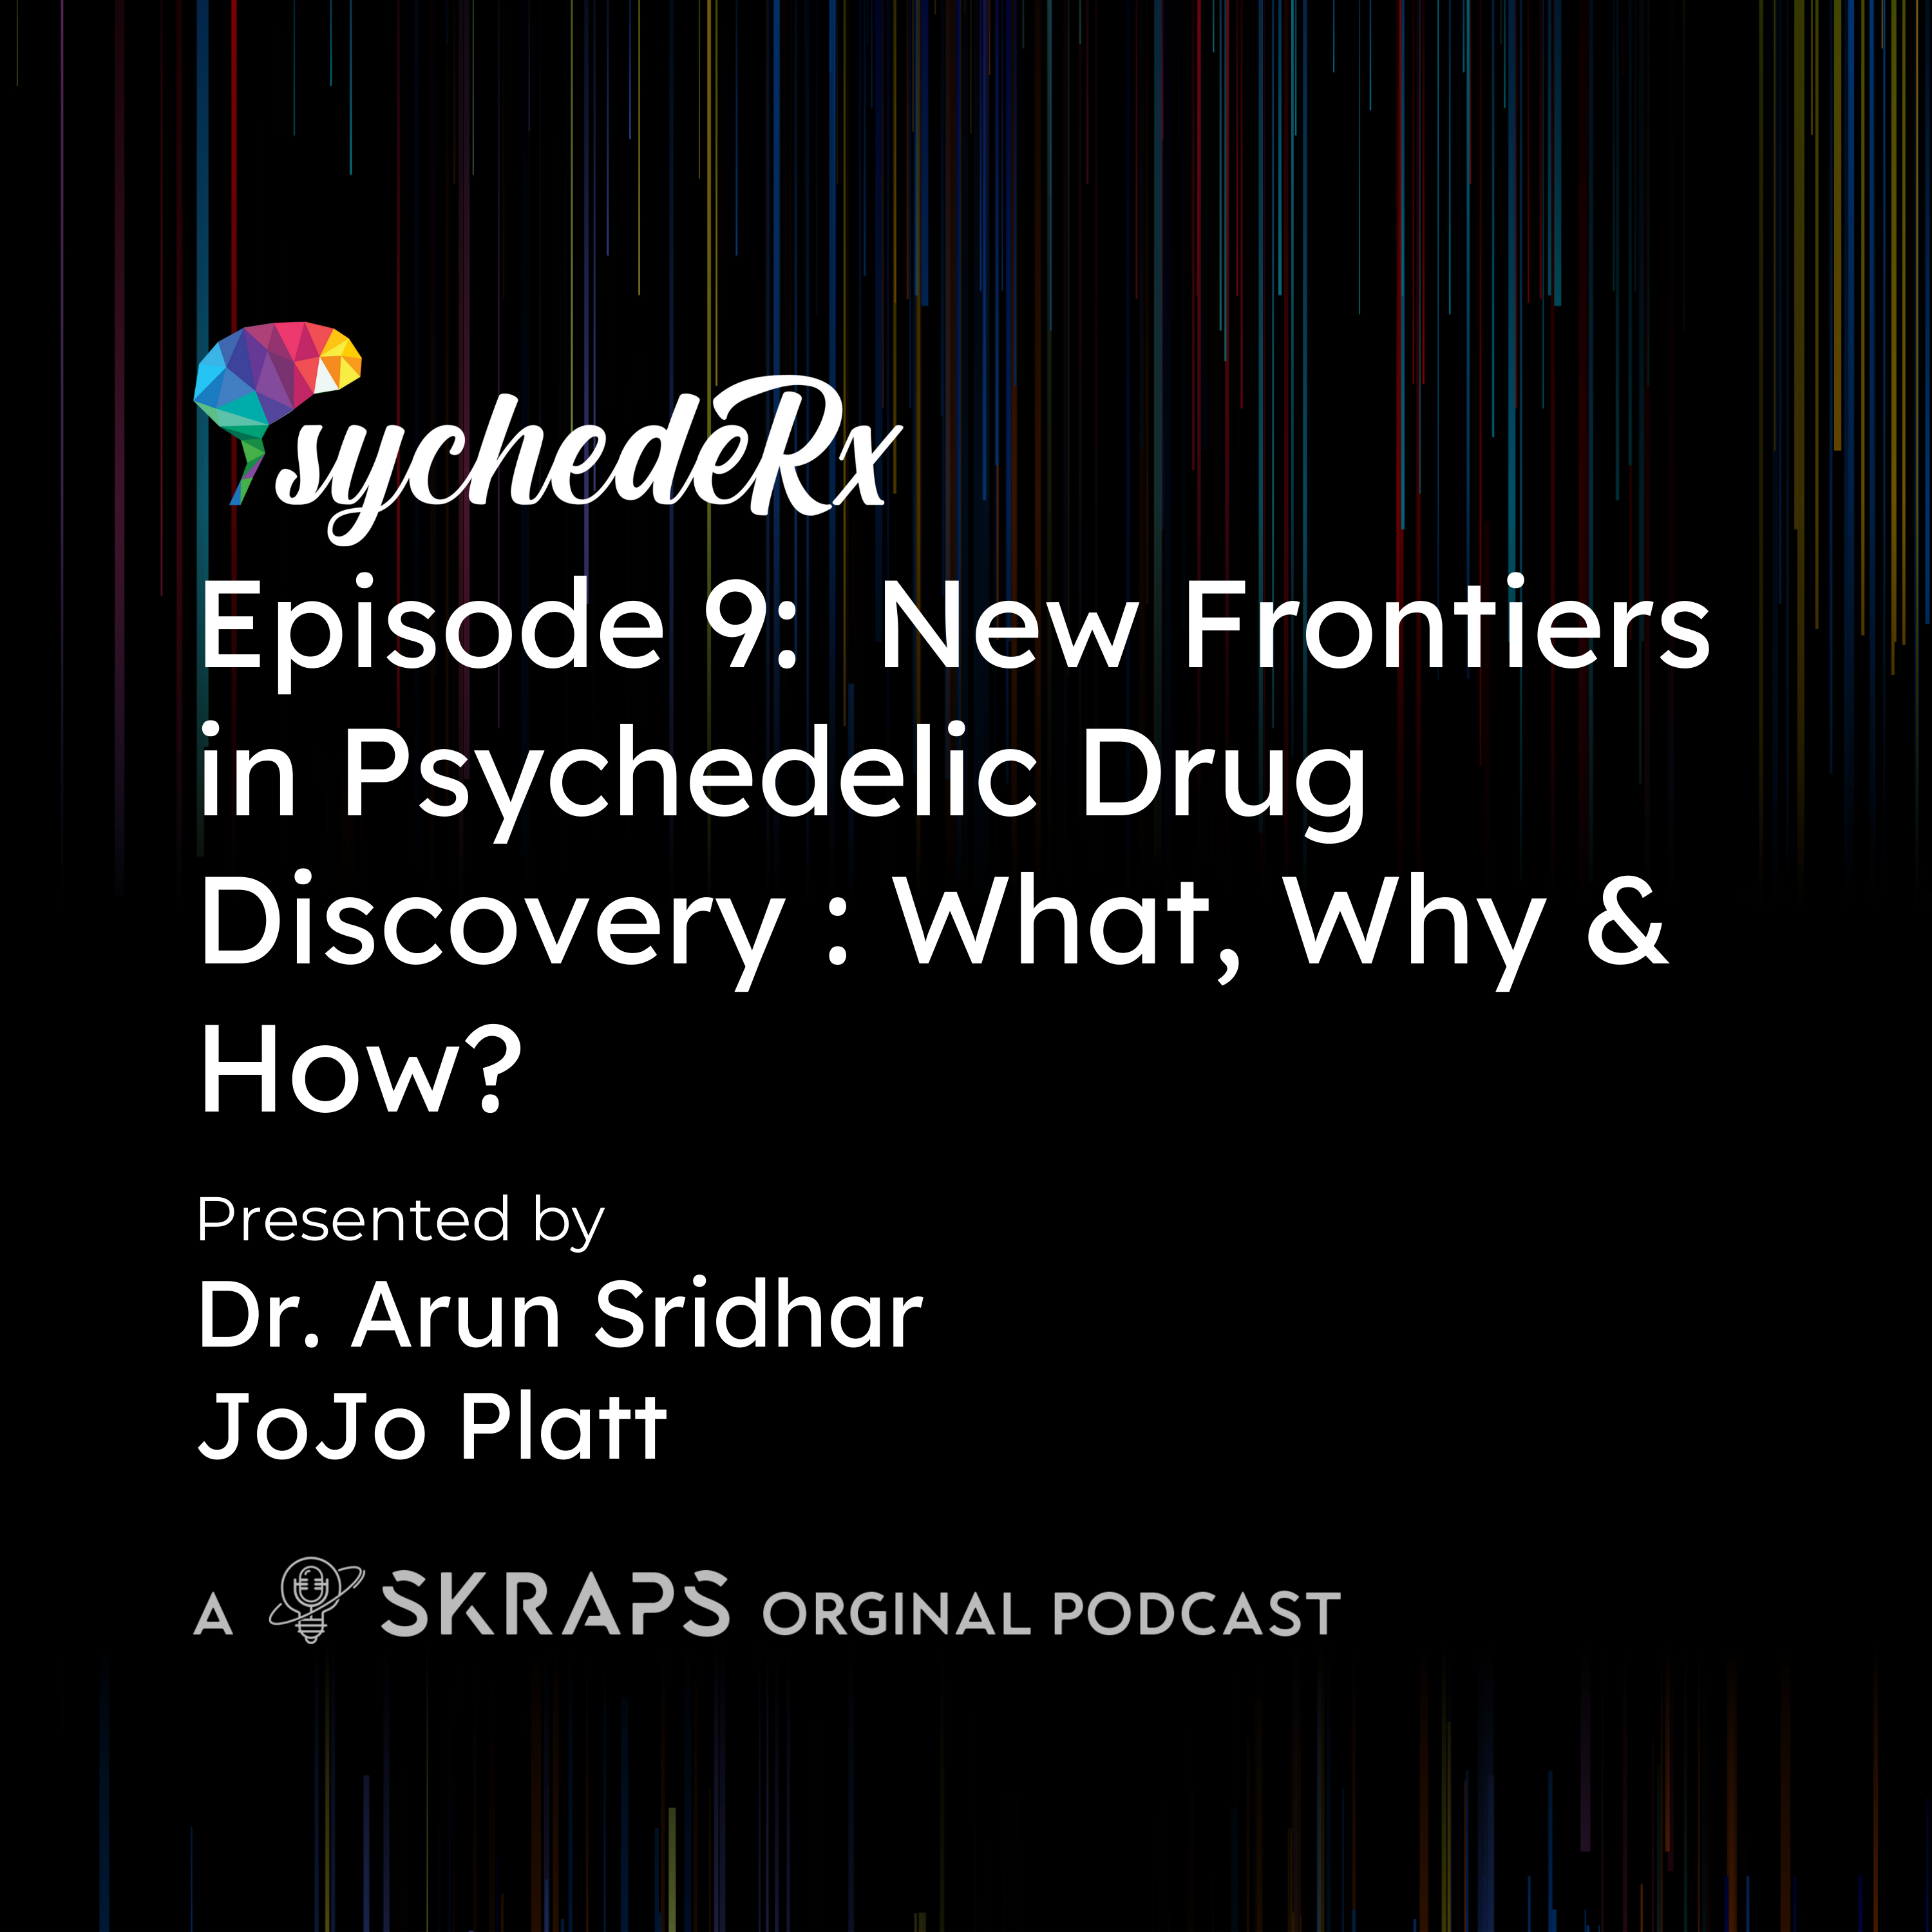 New Frontiers in Psychedelics Drug Discovery: What, Why and How?